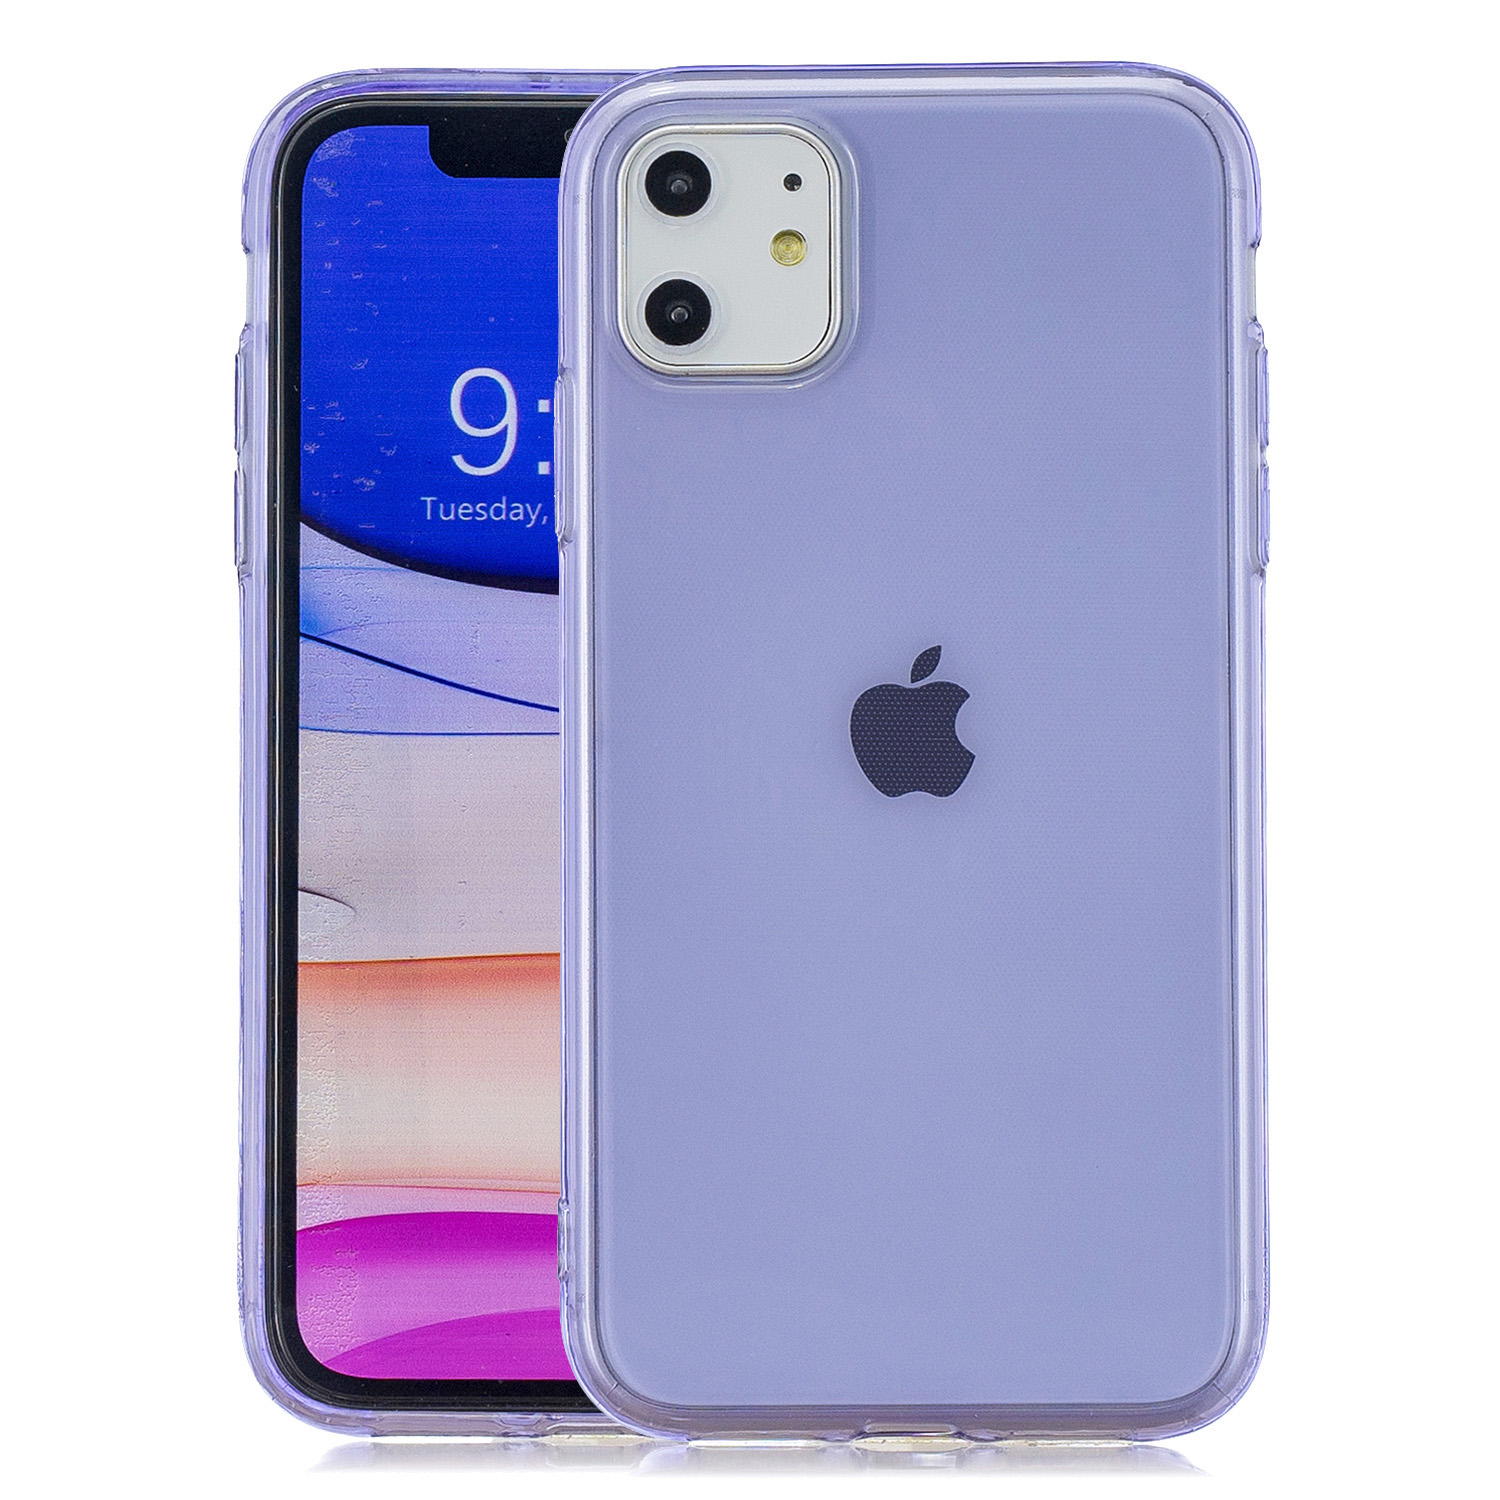 for iPhone 11 / 11 Pro / 11 Pro Max Clear Colorful TPU Back Cover Cellphone Case Shell Purple